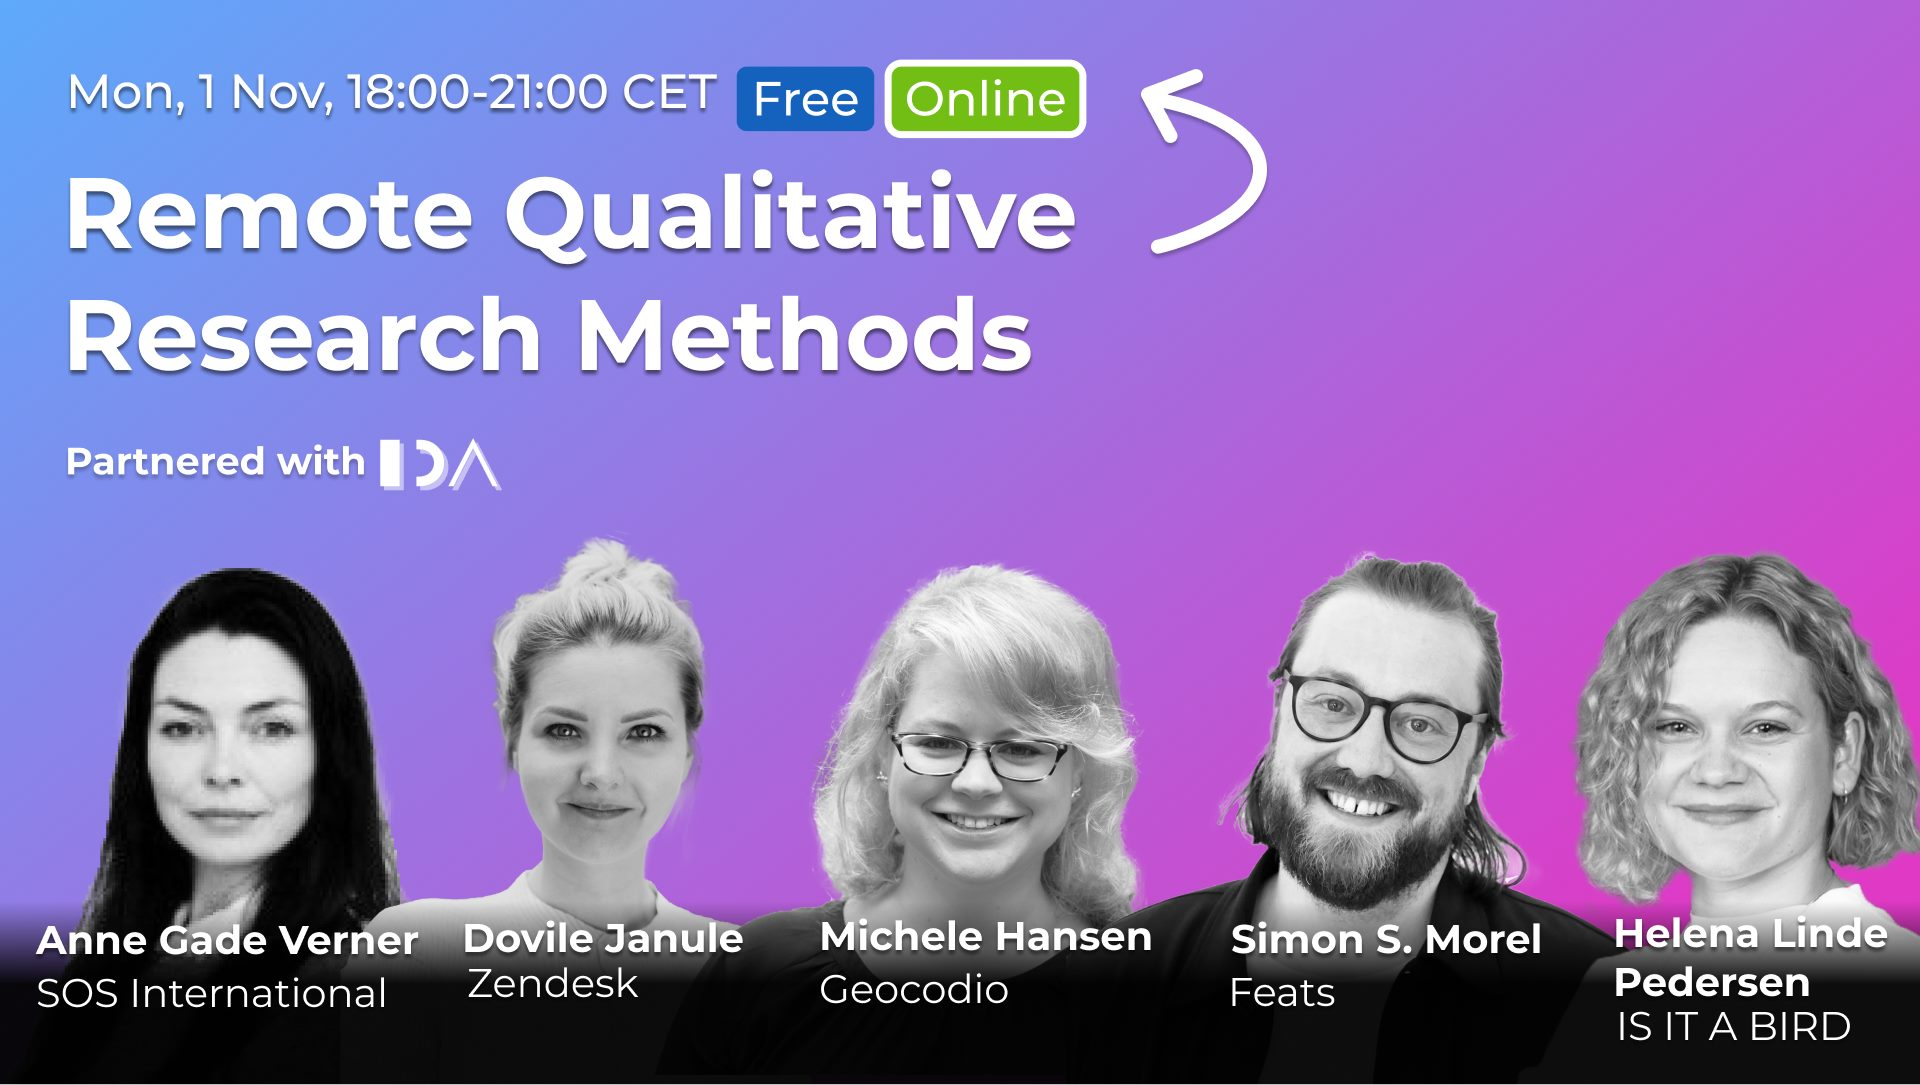 Remote Qualitative Research Methods, a UX Talk together with CPHUX (ONLINE)